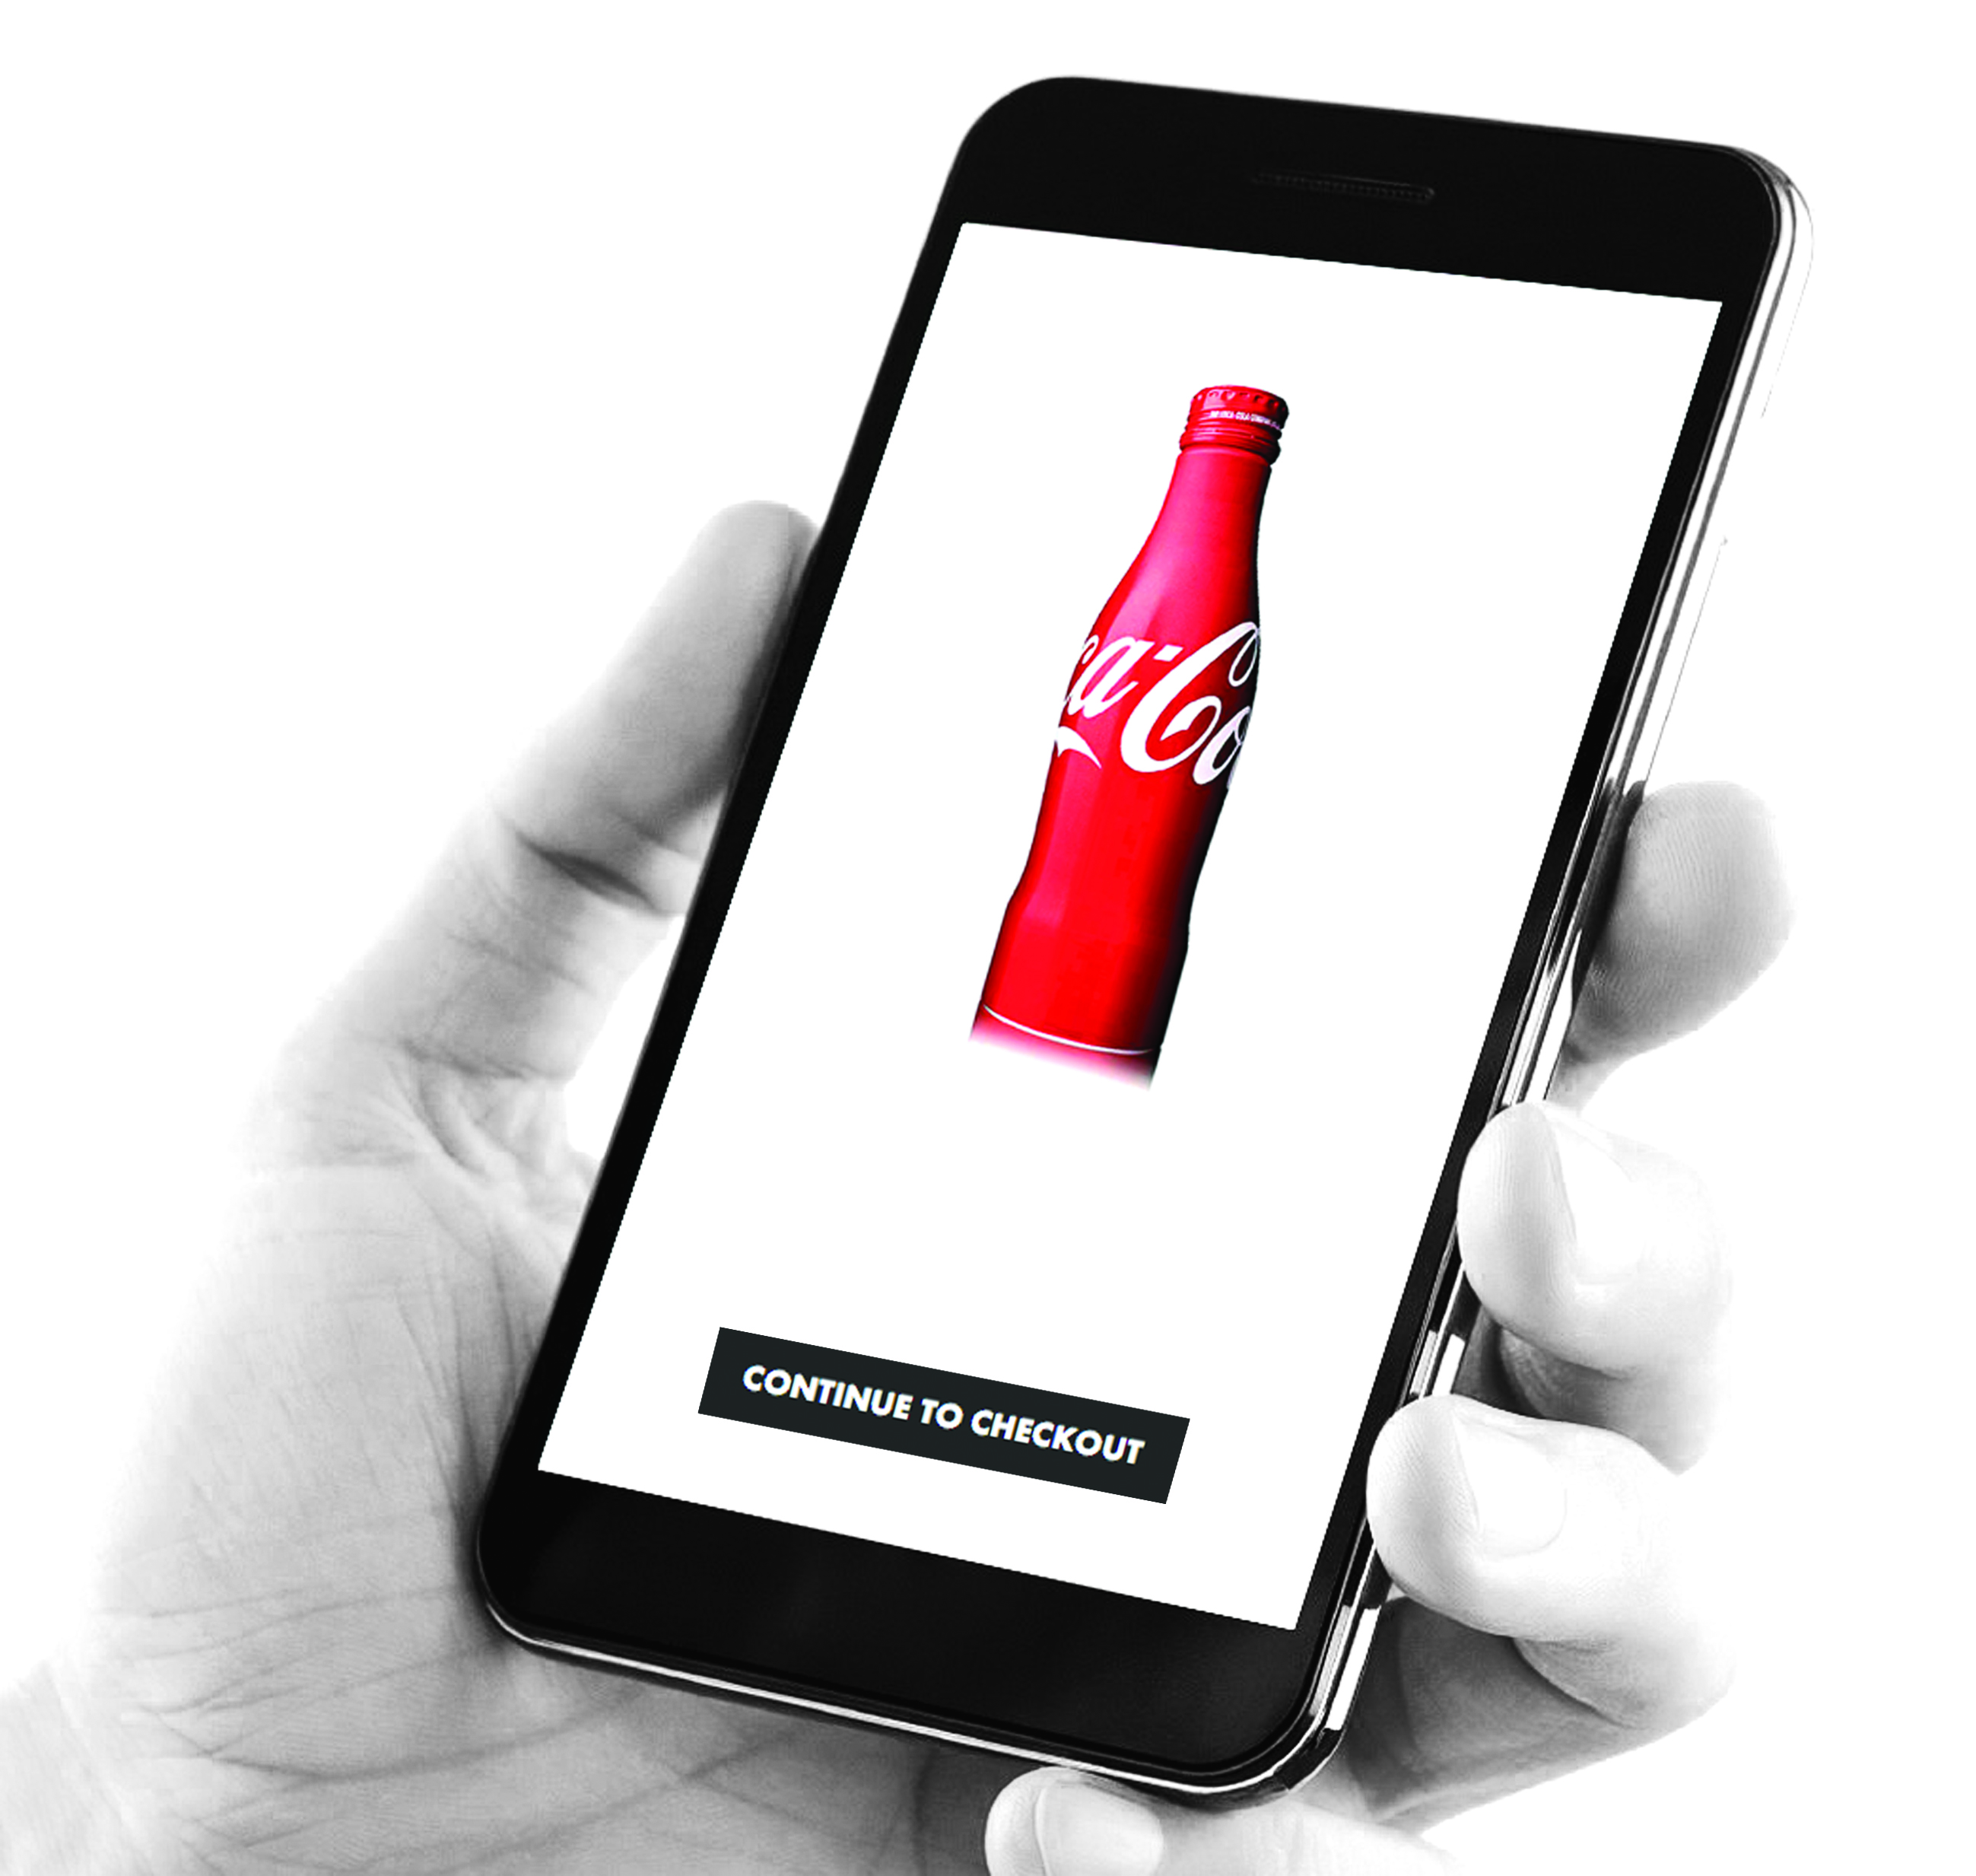 Analytical Report on The Coca-Cola Company (KO)